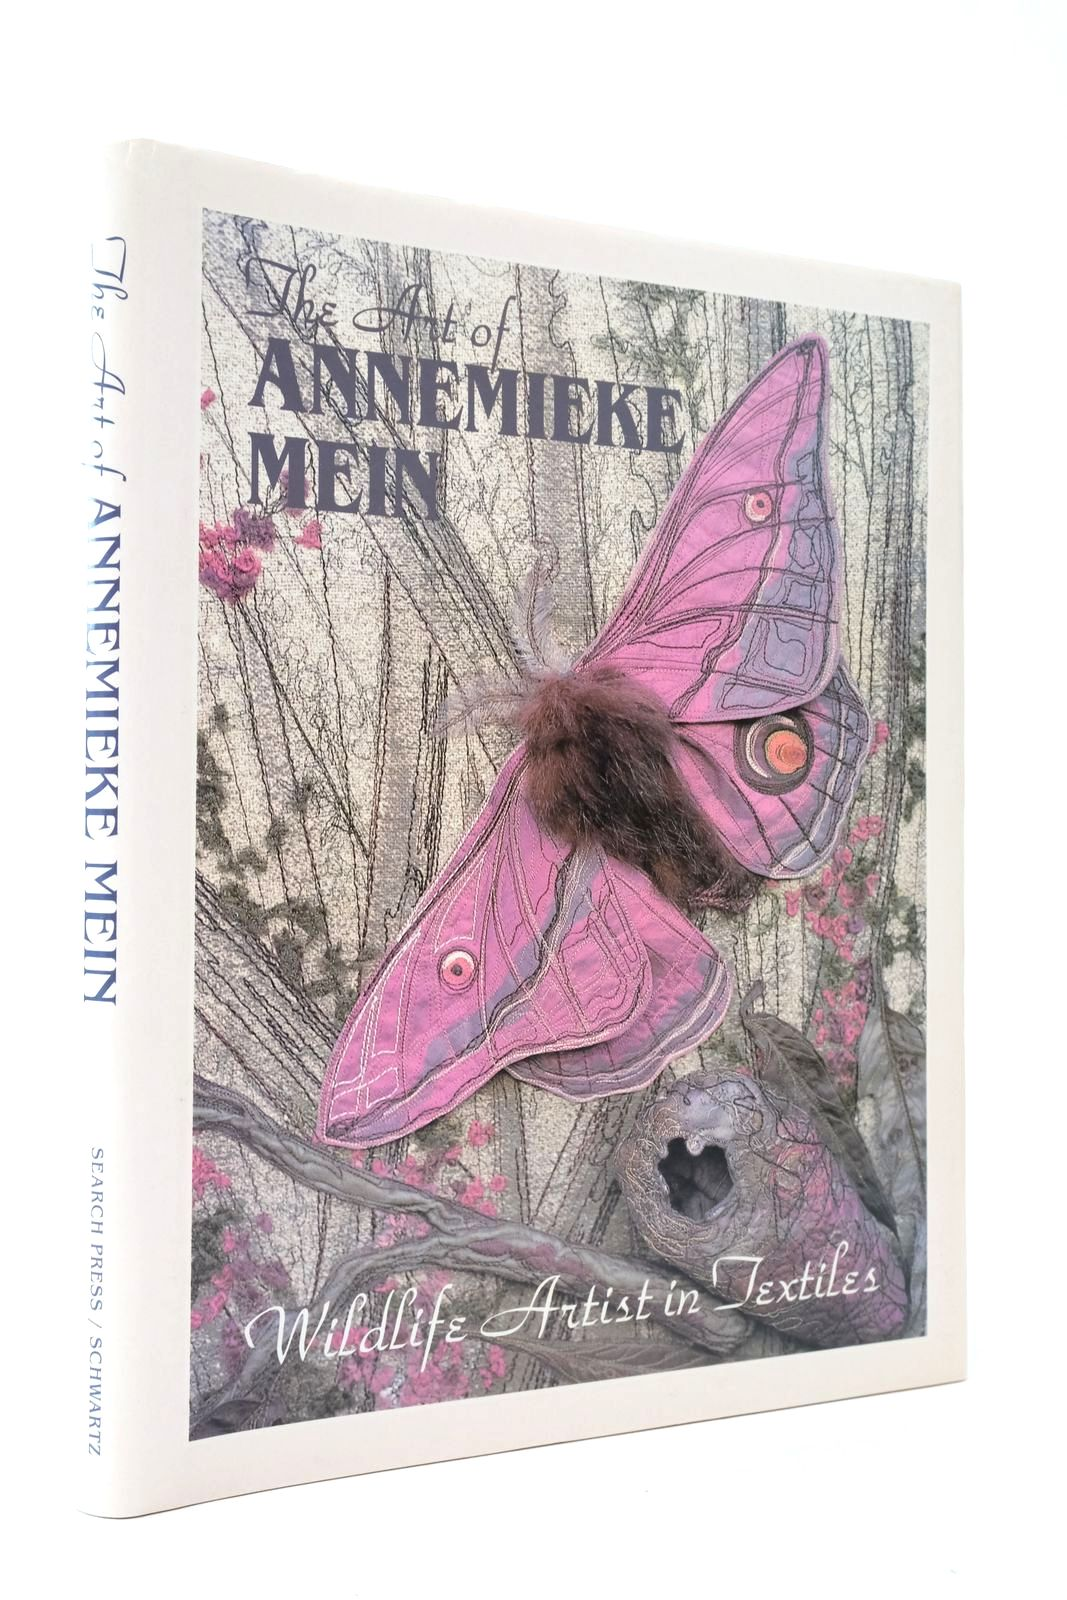 Photo of THE ART OF ANNEMIEKE MEIN WILDLIFE ARTIST IN TEXTILES illustrated by Mein, Annemieke published by Search Press Ltd. (STOCK CODE: 2134826)  for sale by Stella & Rose's Books